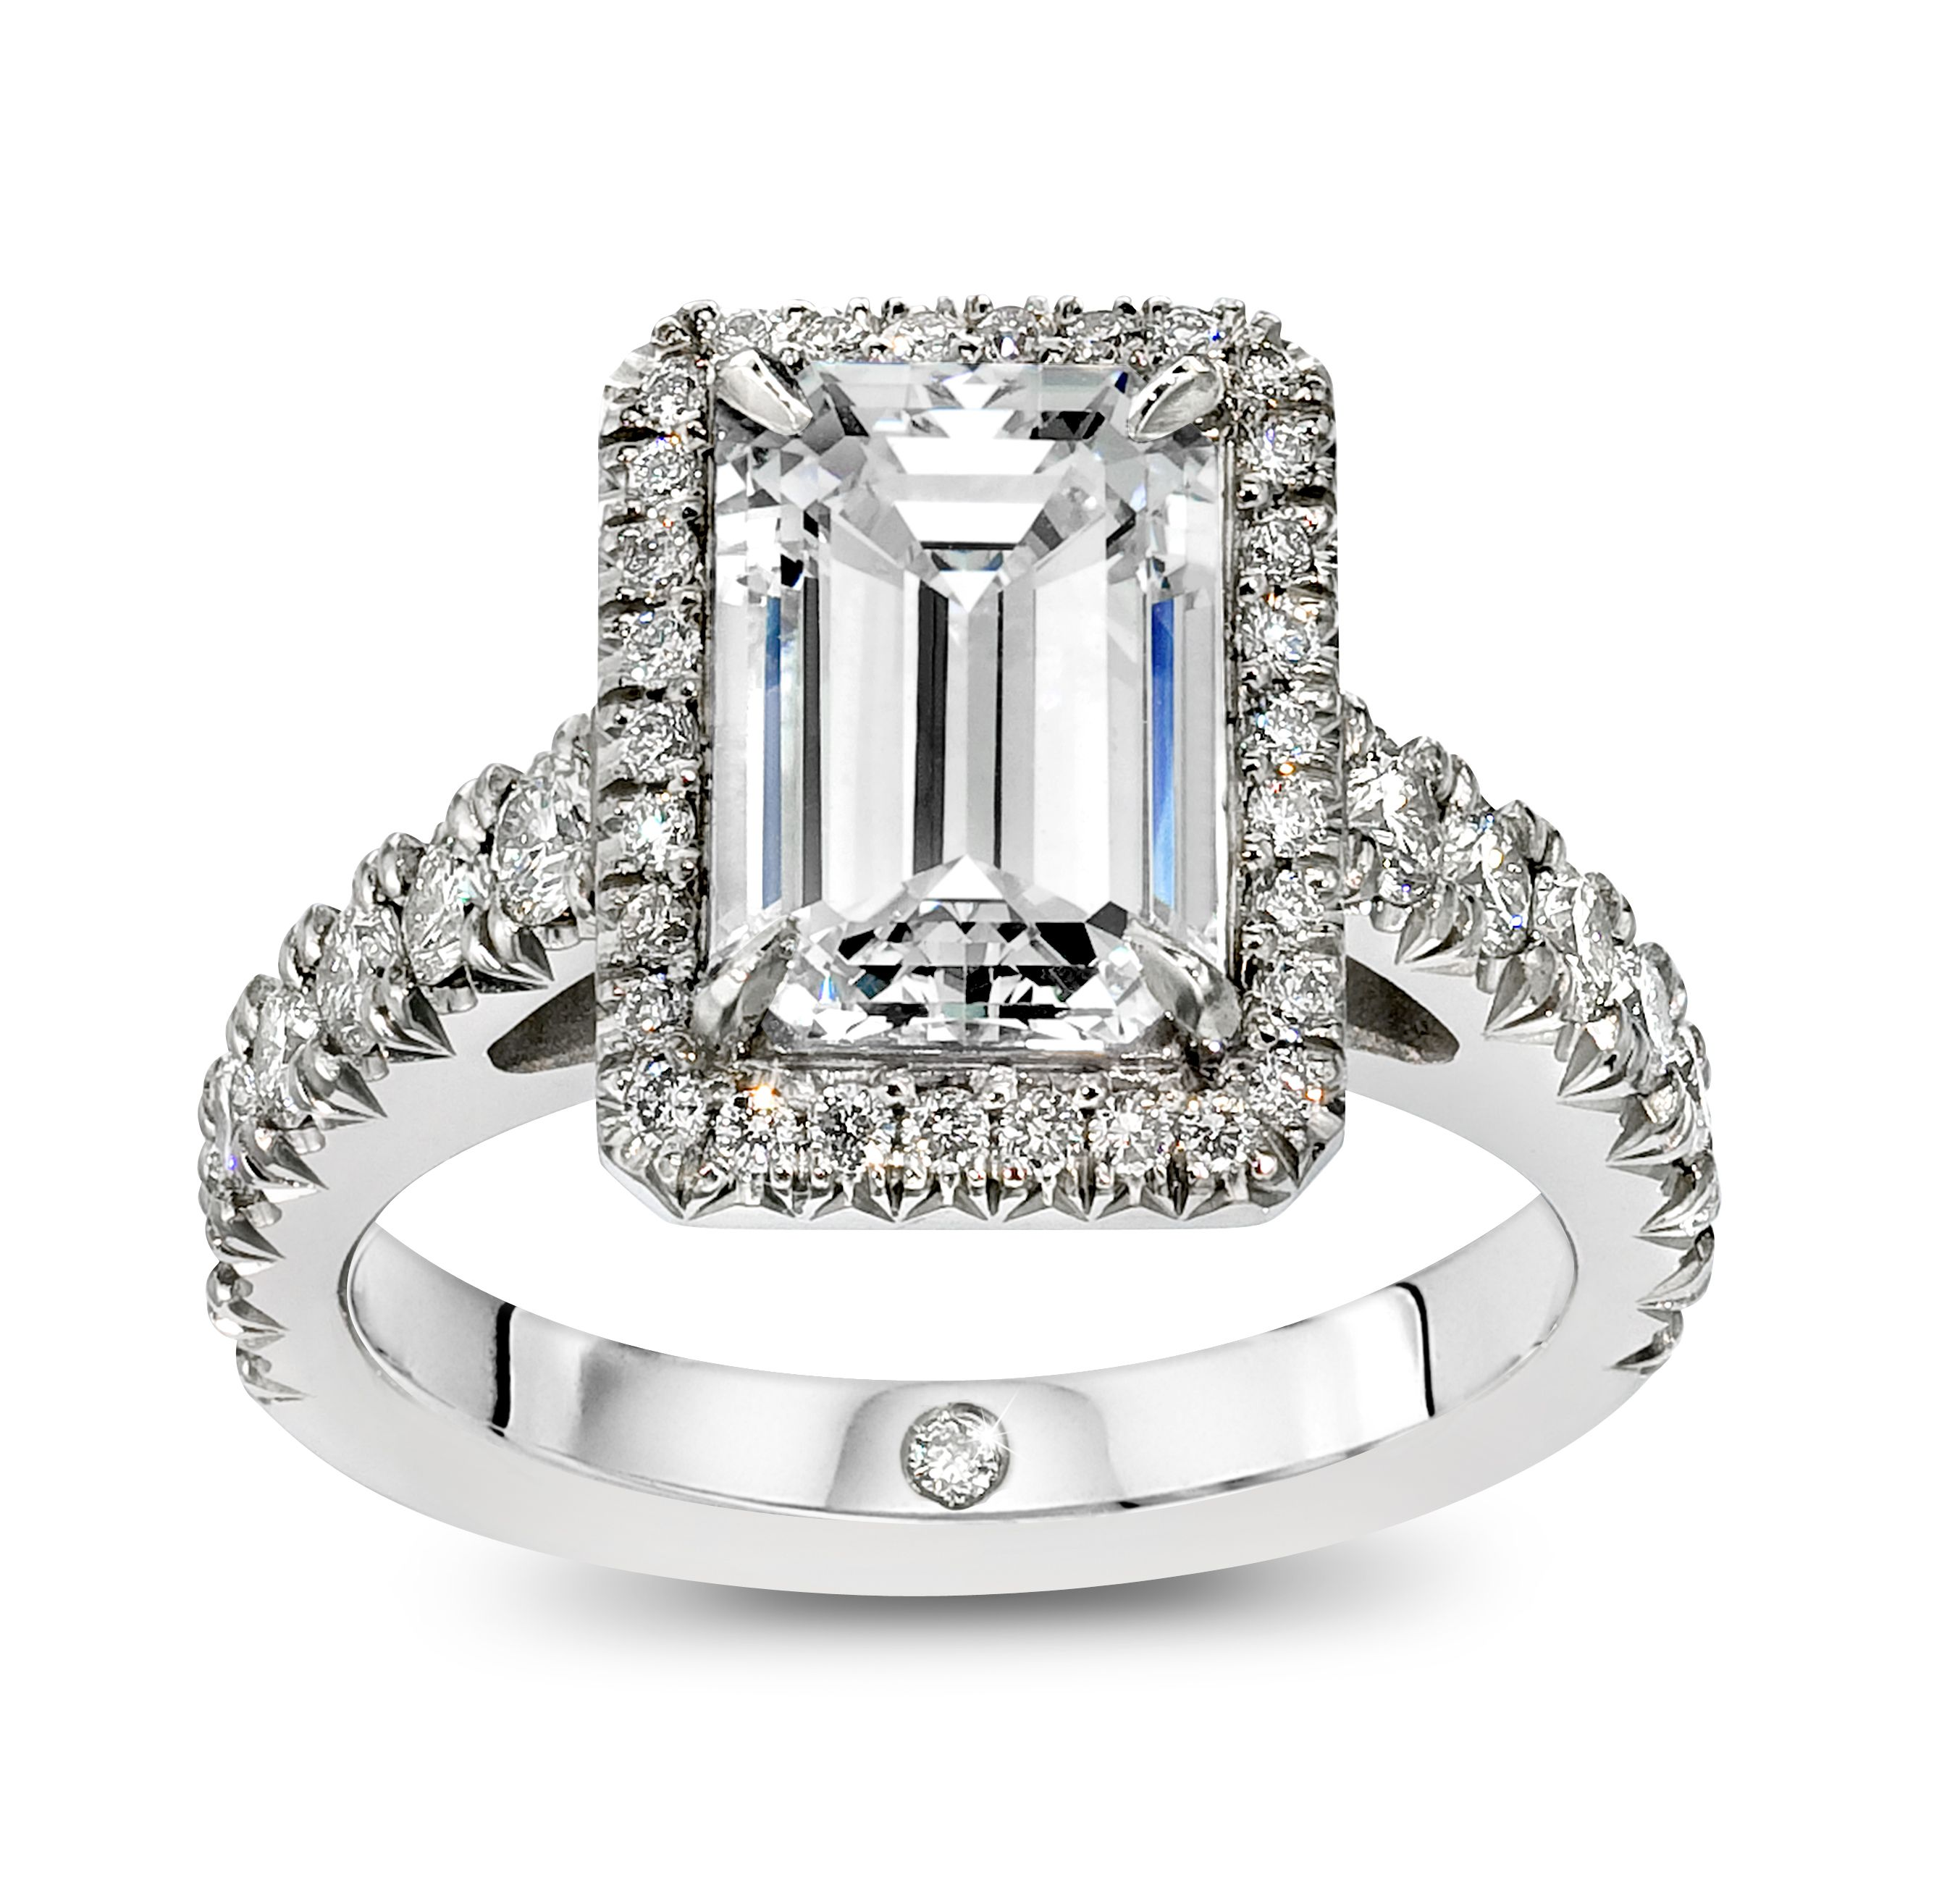 2ct Emerald Cut Diamond Engagement Ring set in a Platinum and